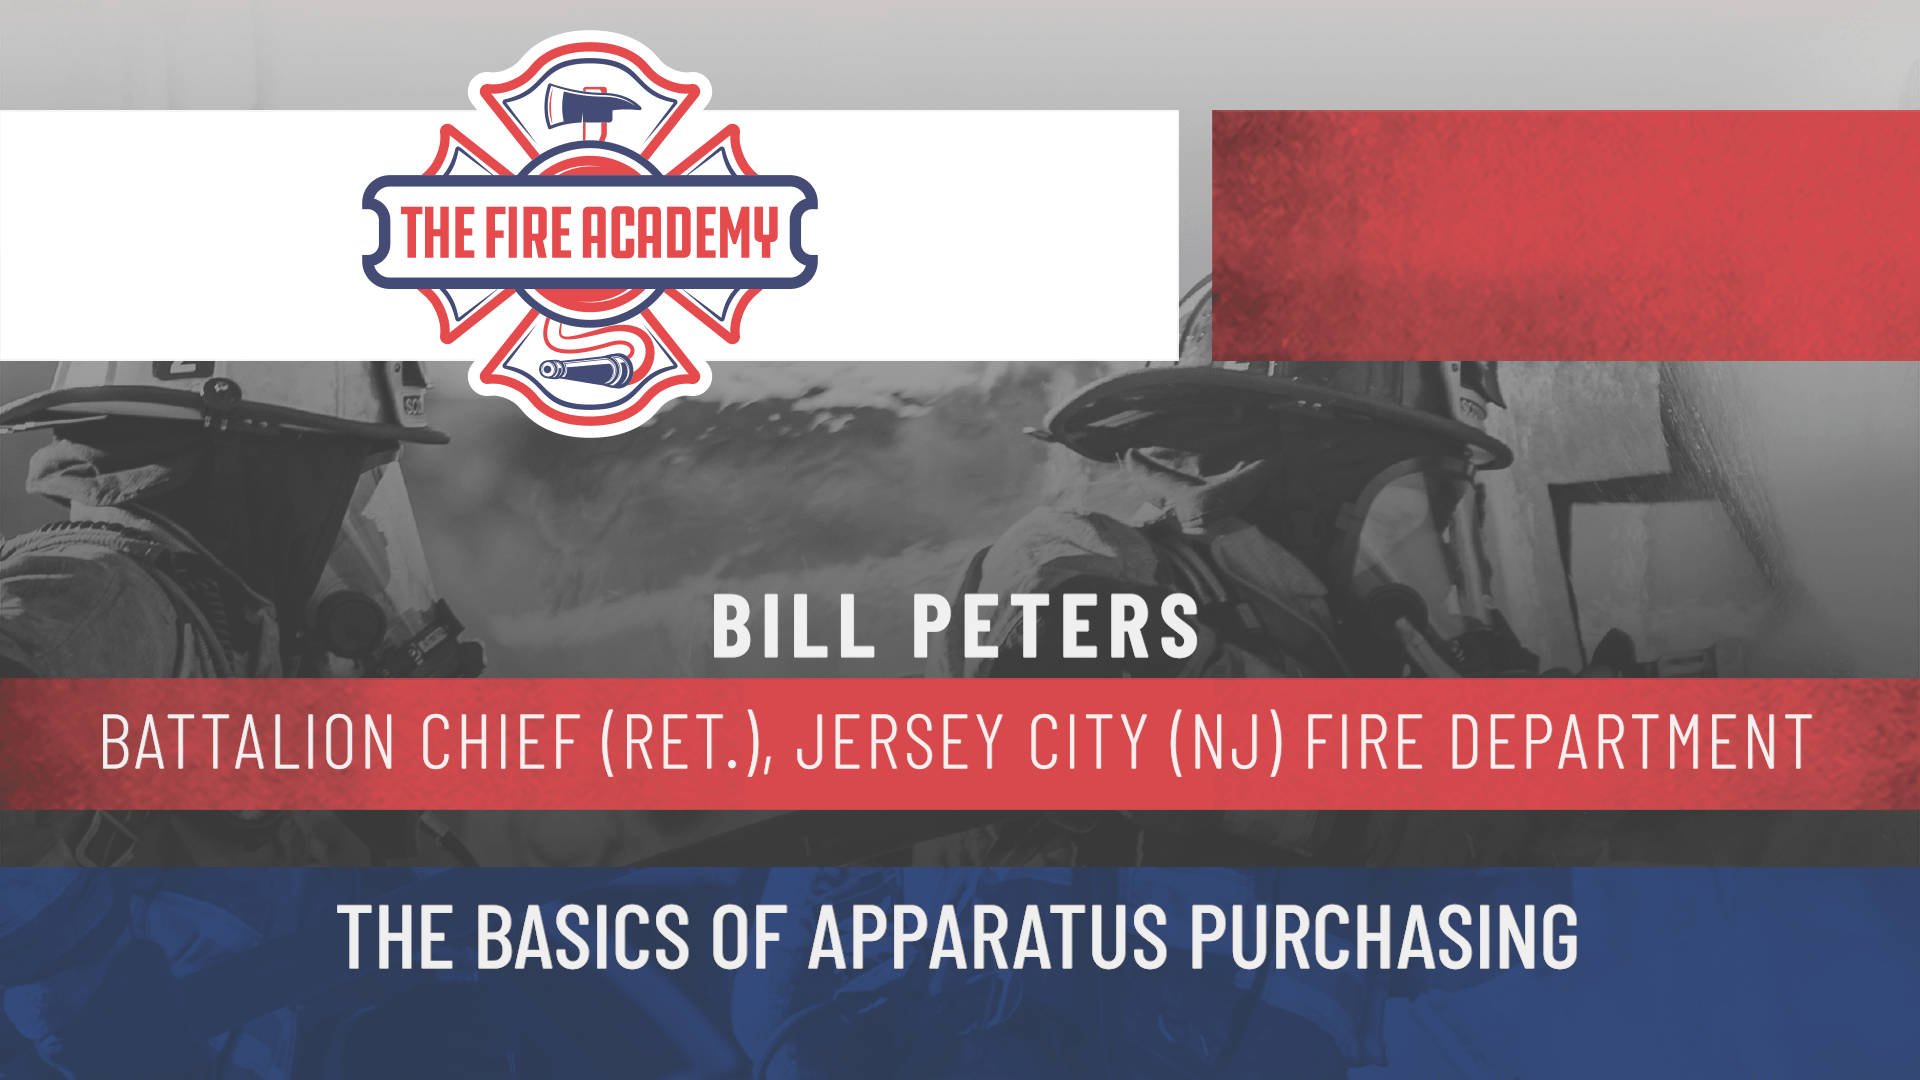 The Basics of Apparatus Purchasing